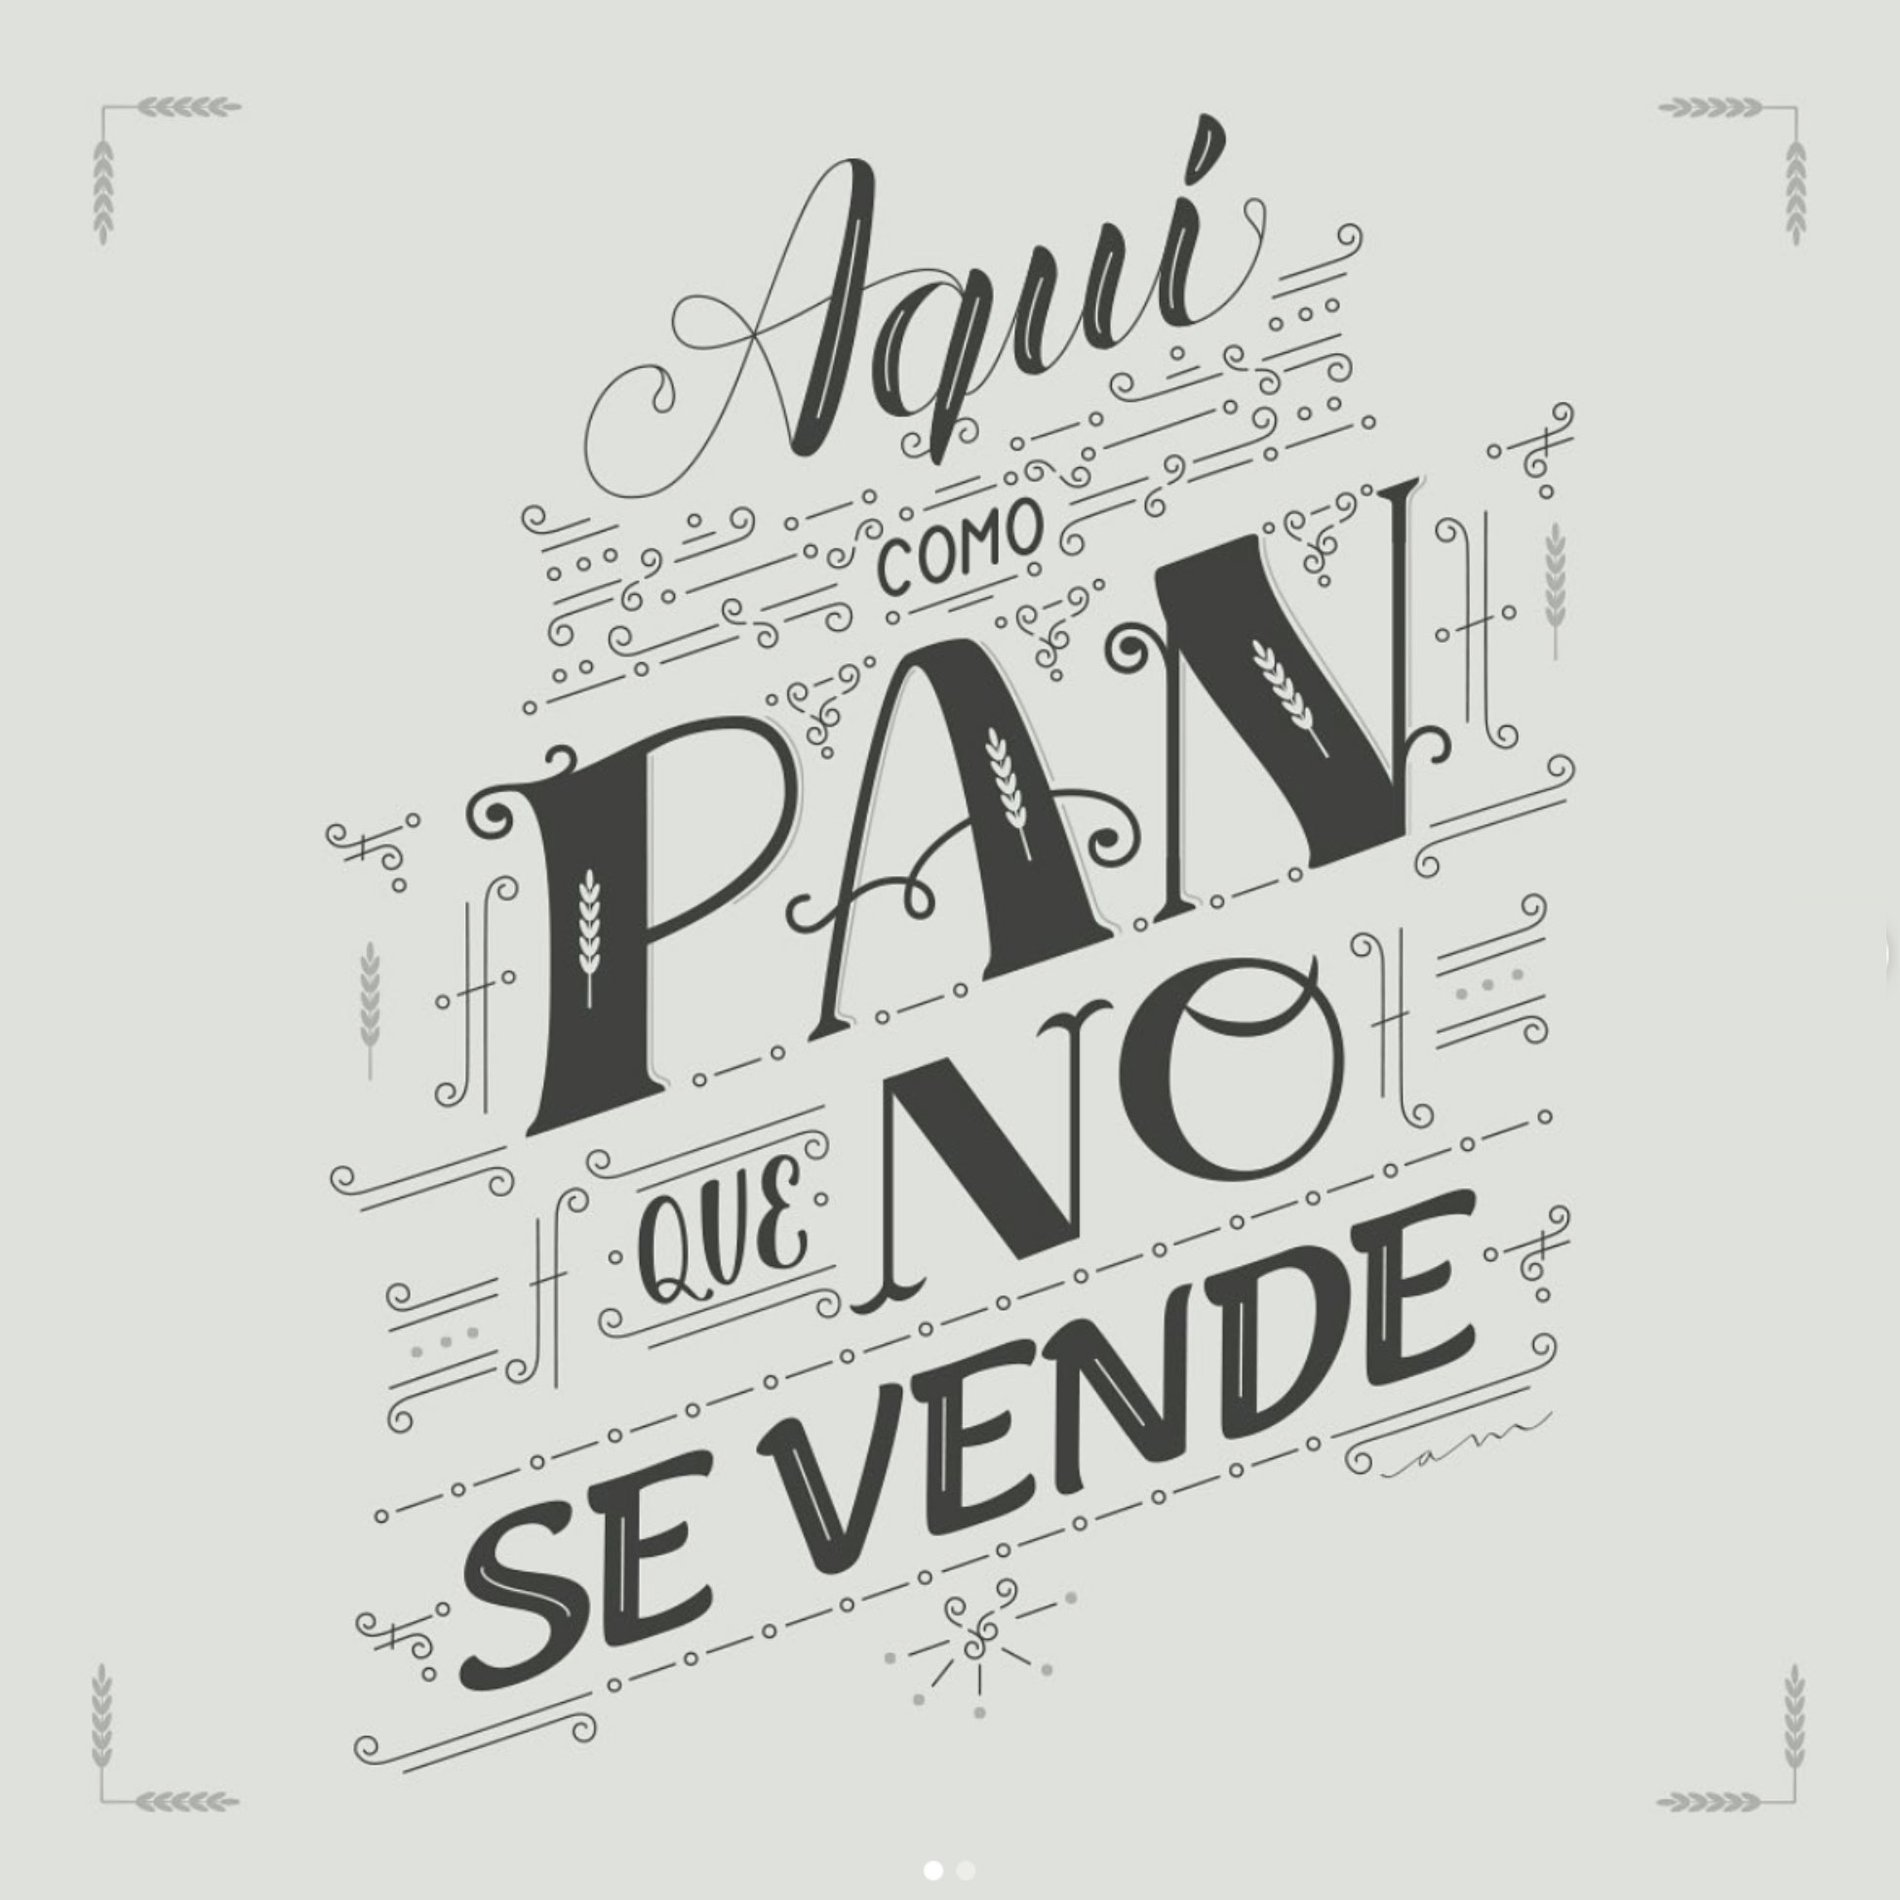 Ana_Michel_LETTERING 1.png